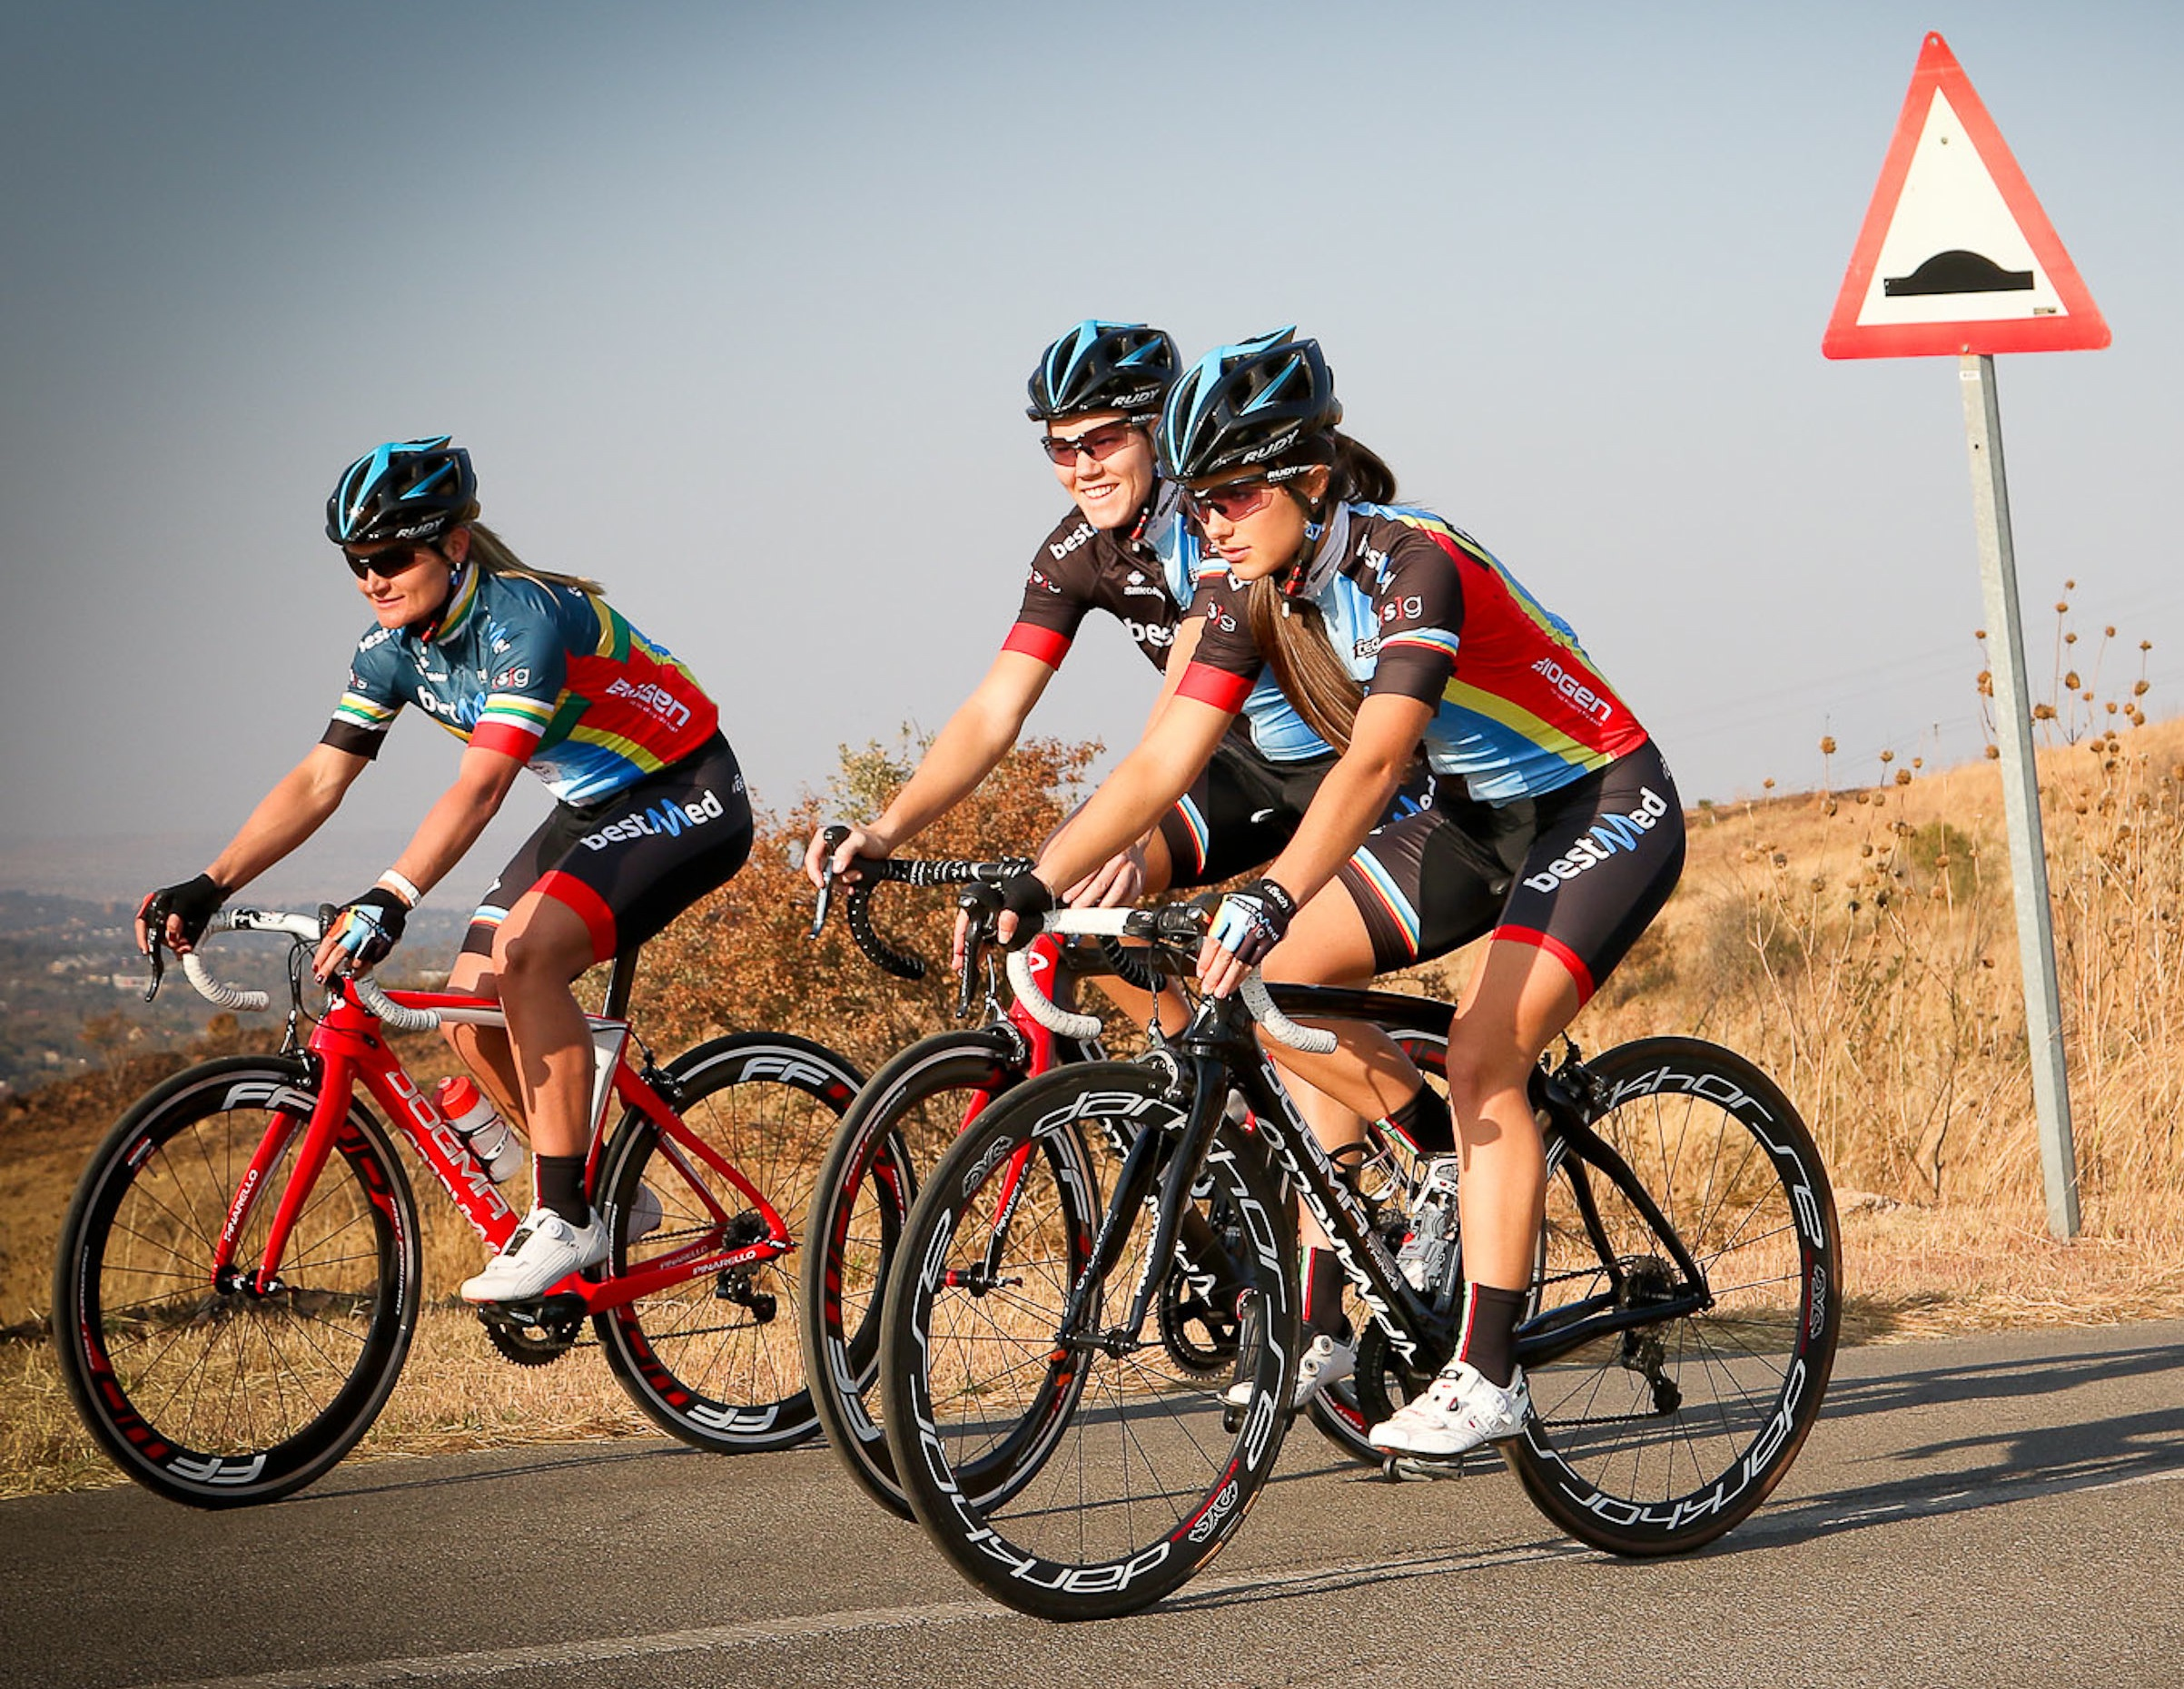 With more than three-and-a-half million South Africans affected by diabetes, and many more undiagnosed, Team Bestmed-ASG aim to change lives for the better when they join the Novo Nordisk Cycle 4 Diabetes relay from November 5 to 7.